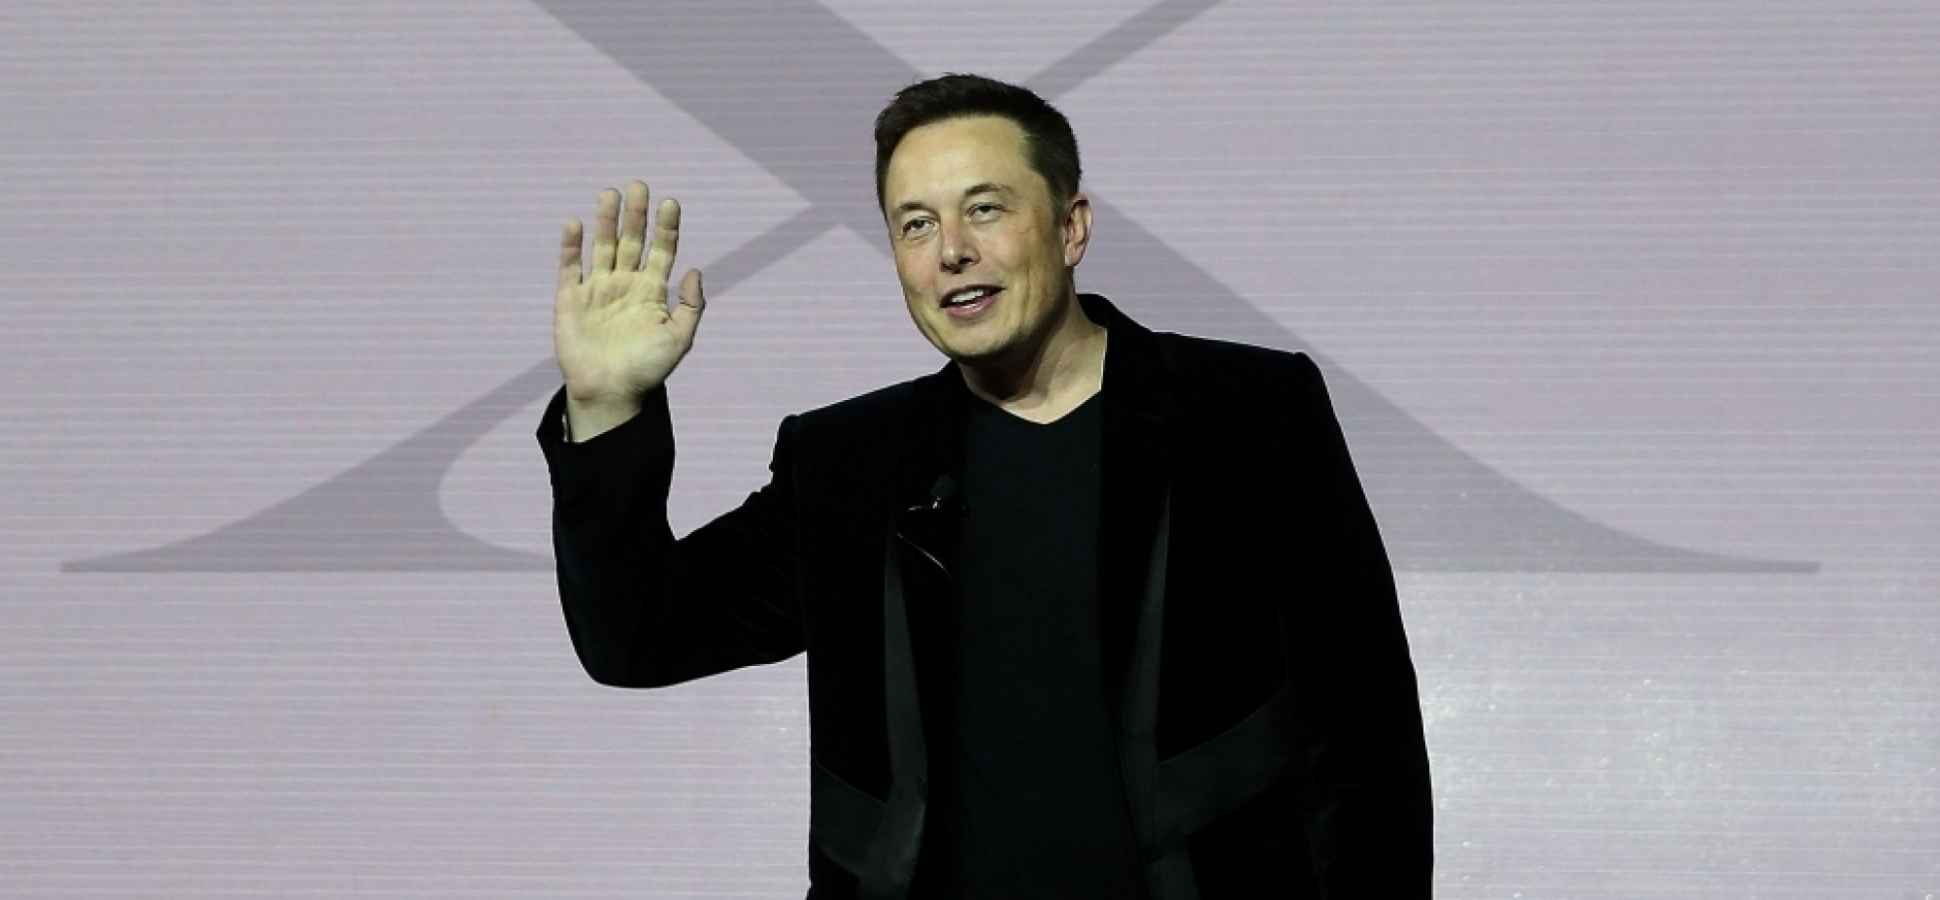 How Elon Musk Just Beat Google to Make the Self-Driving Car